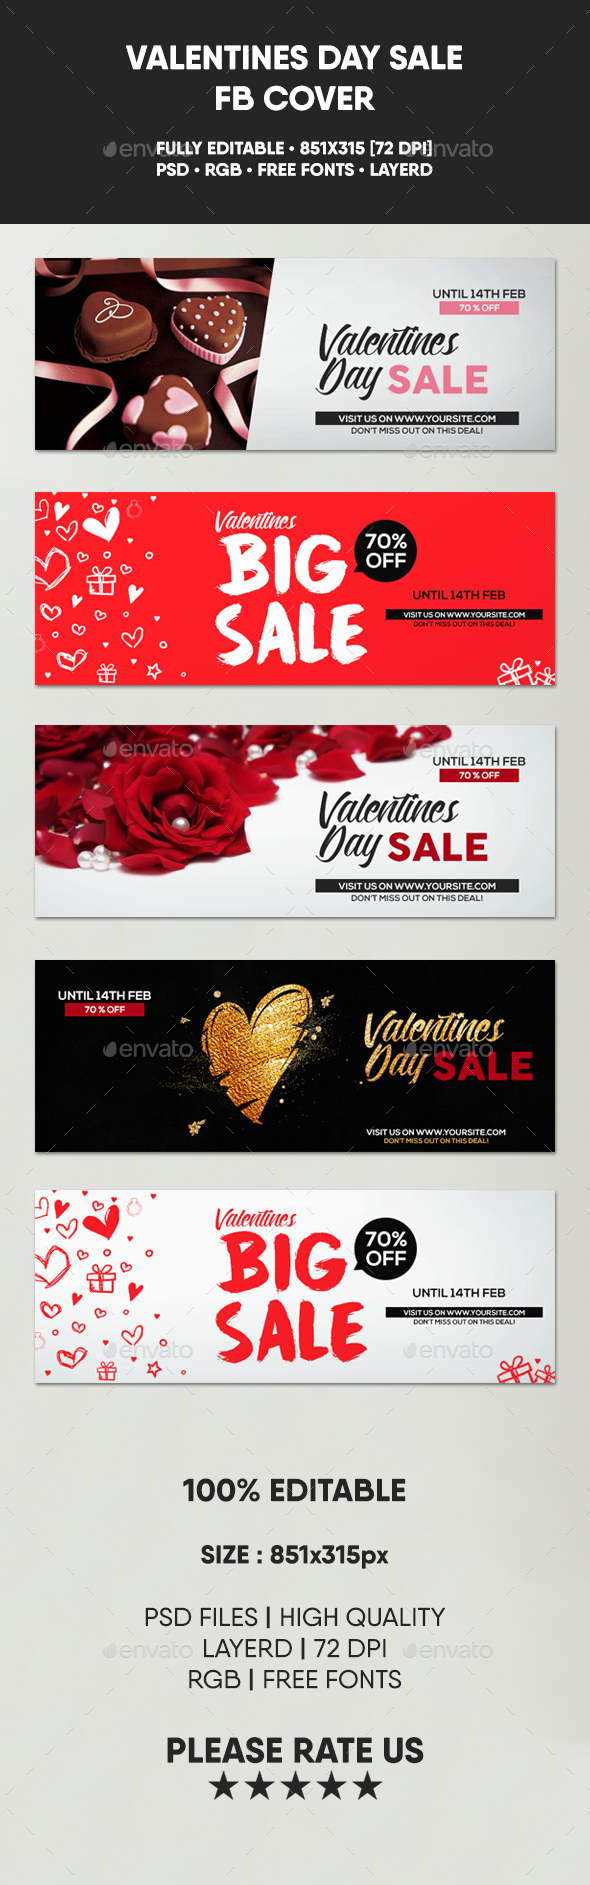 5 Valentines Sale Facebook Covers - Facebook Timeline Covers Social Media